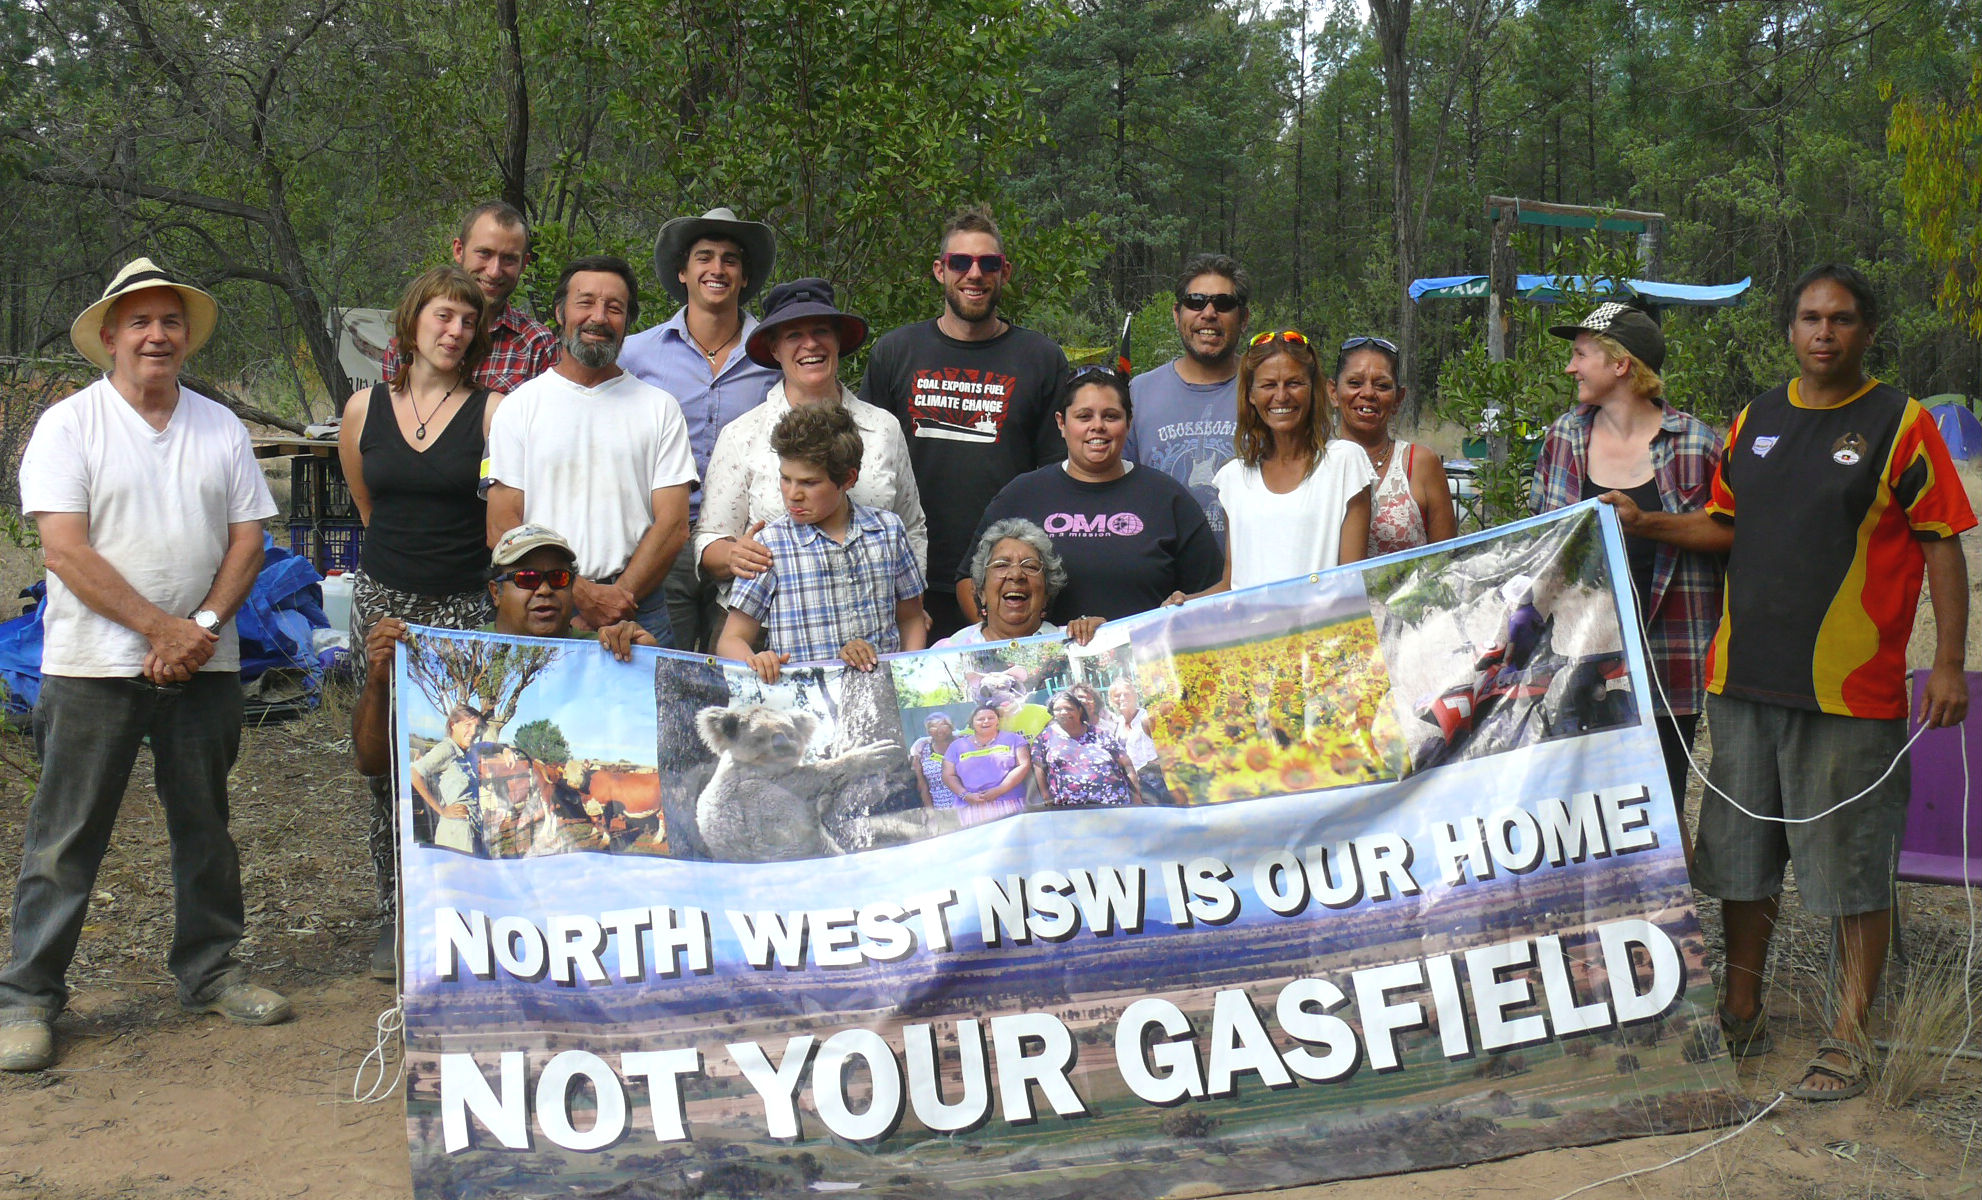 lock the age alliance, pilliga forest, coal seam gas risks, coal mining australia